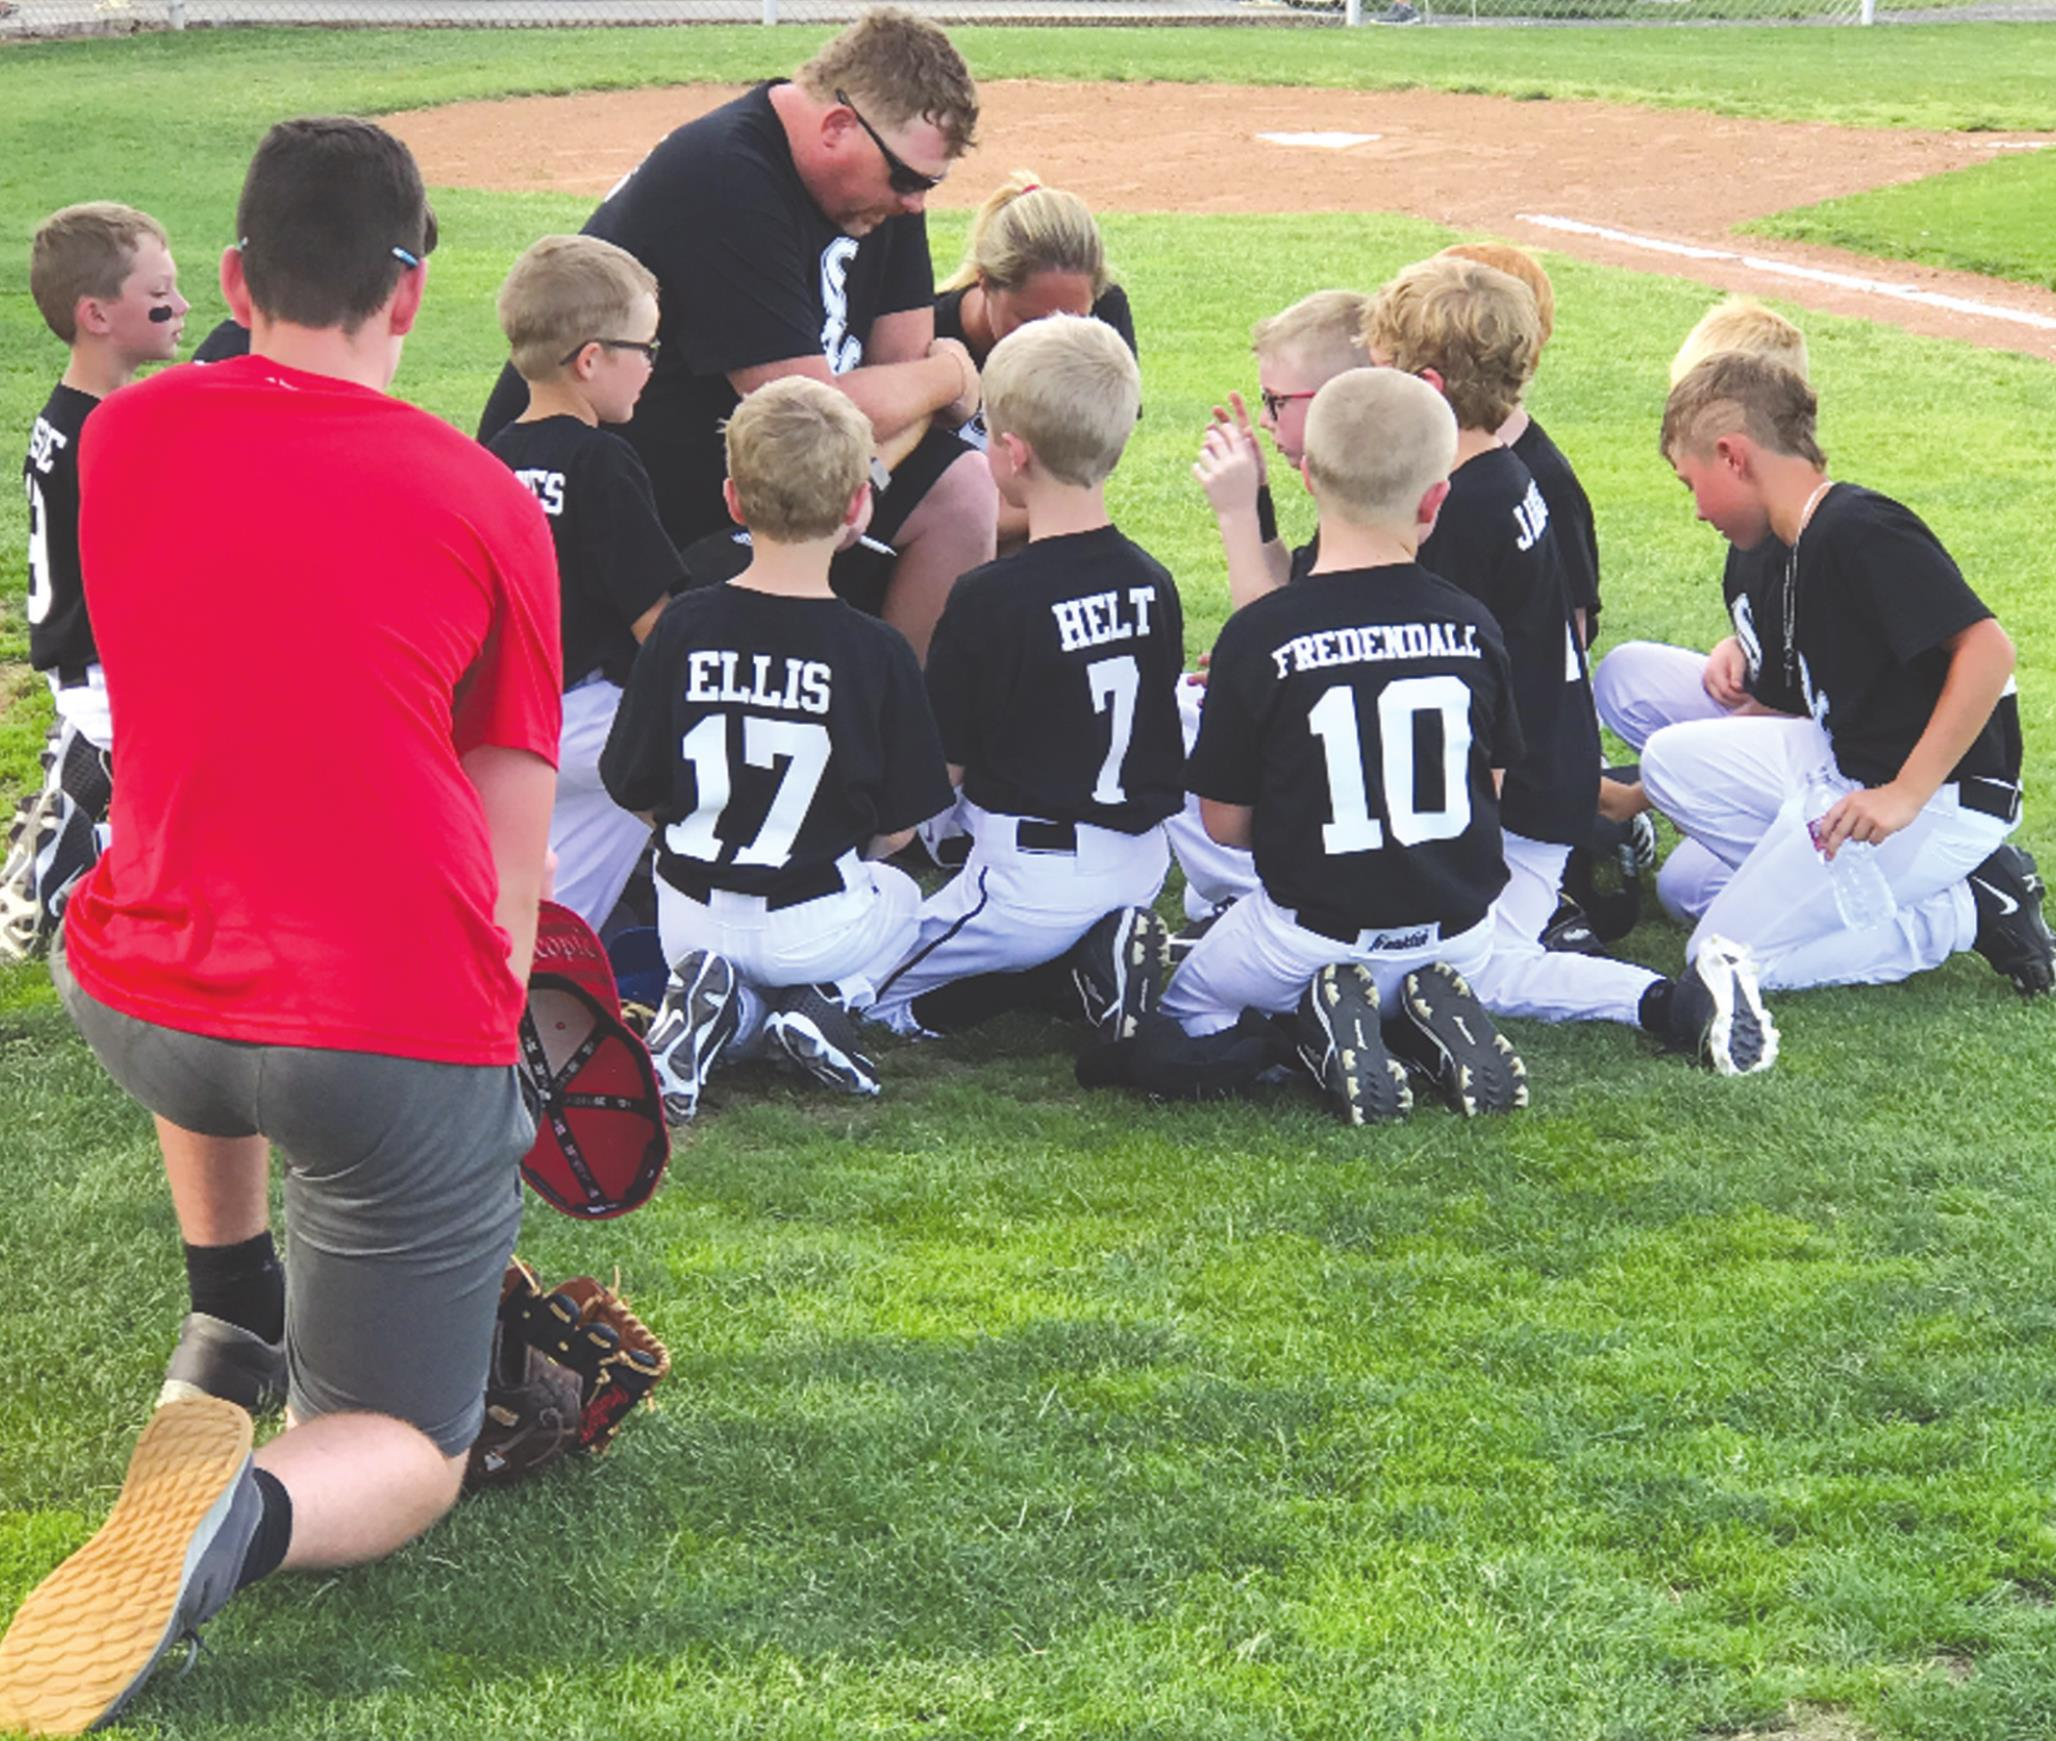 Matt and Kaye Frye, center, lead their coach pitch team in a prayer before the a game. The Frye's son, Weston, plays on the team. Their daughters, Joeclyn and Piper, play on a T-ball team. Provided